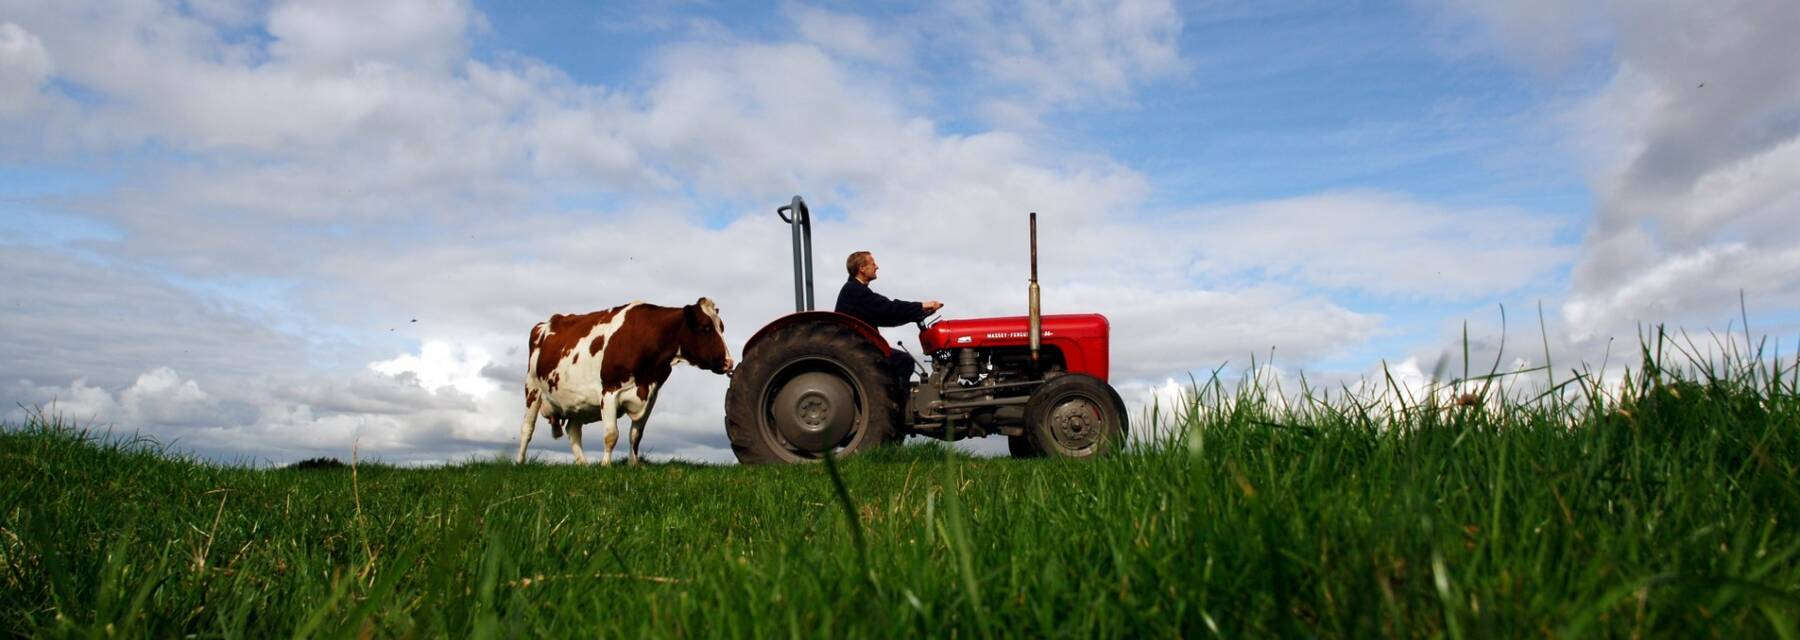 A cow and tractor in a green field.